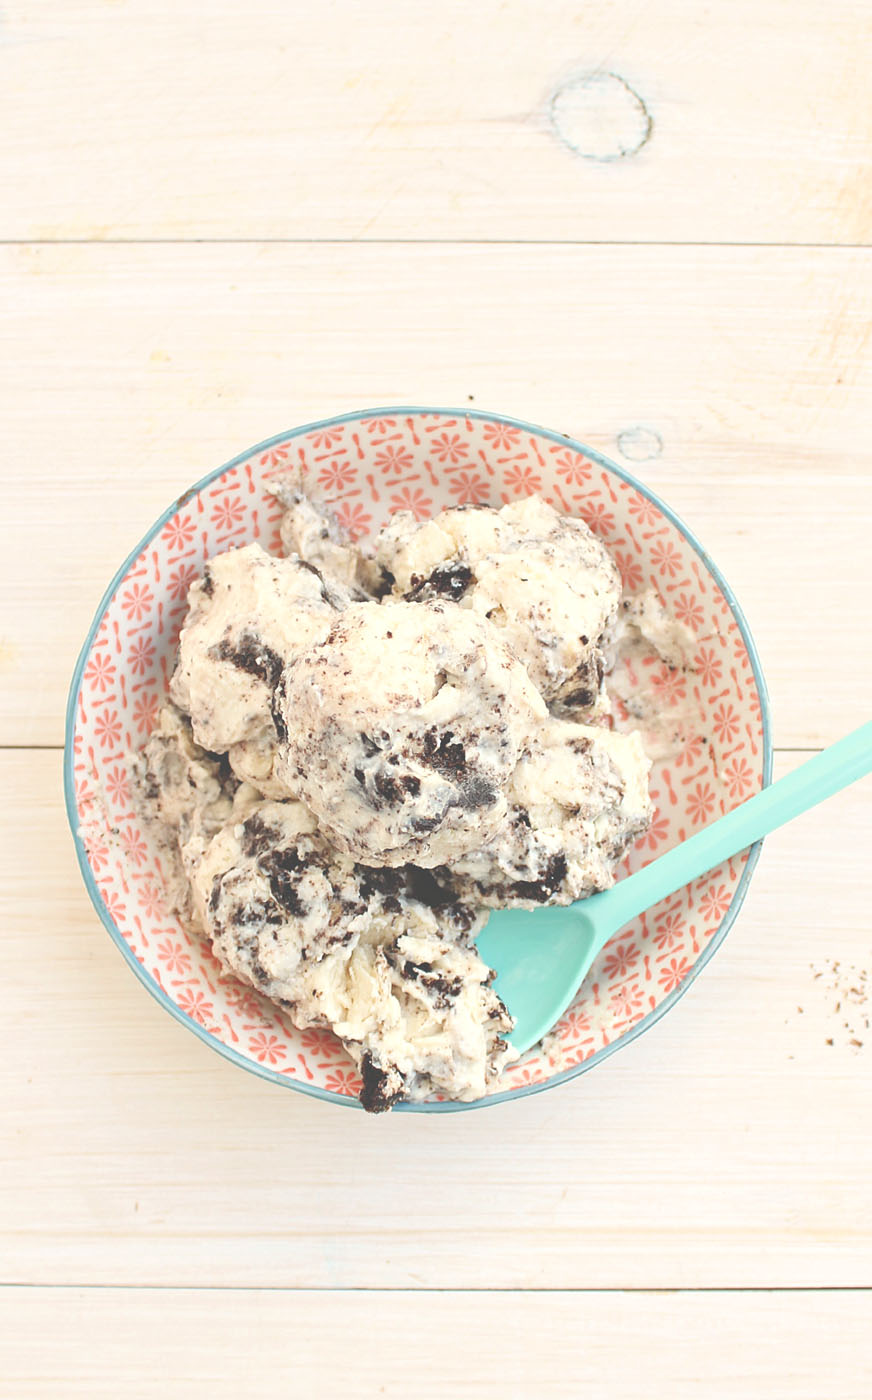 Dreams do come true with this Skinny Oreo Ice-Cream: high protein, low fat, low sugar and gluten free. This is THE BOMB!